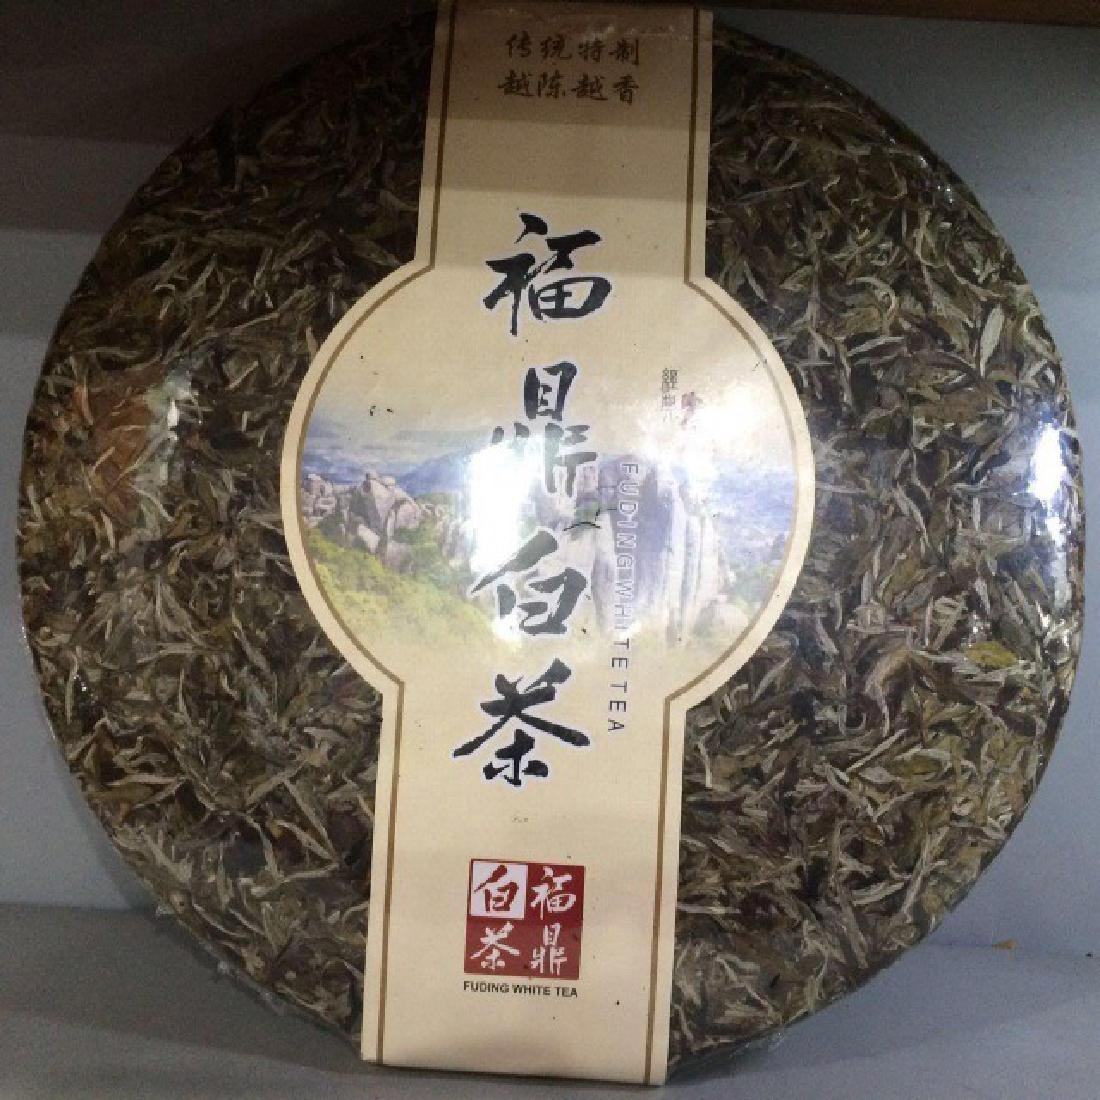 CHINA YUNNAN PU'ER BRICK TEA Y2005 3KG